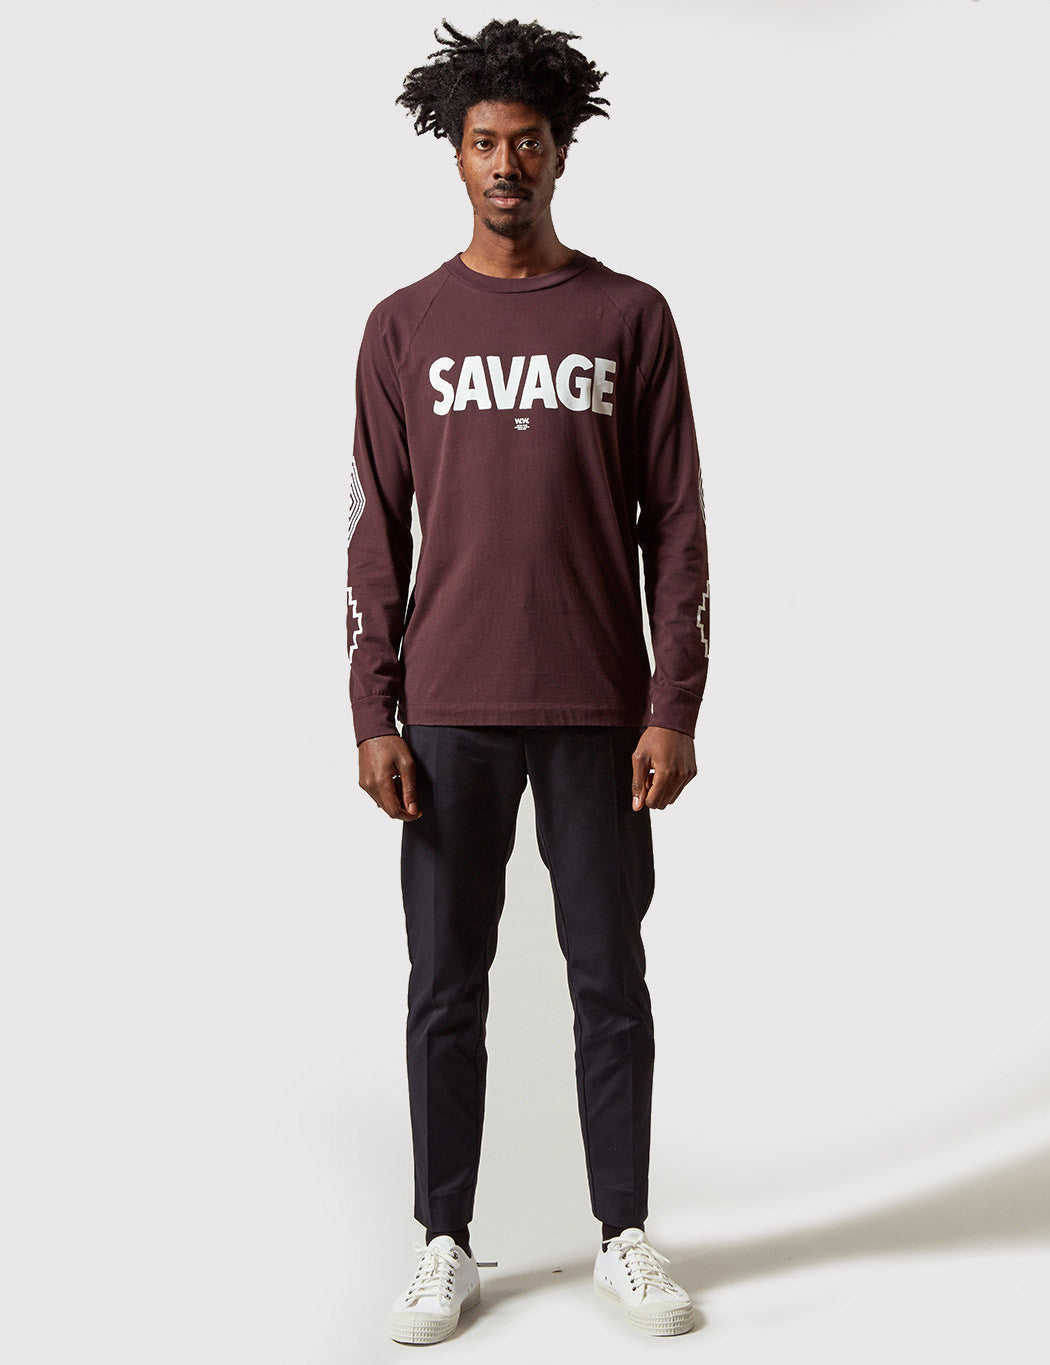 Wood Wood Han Savage Longsleeve T-Shirt - Brown